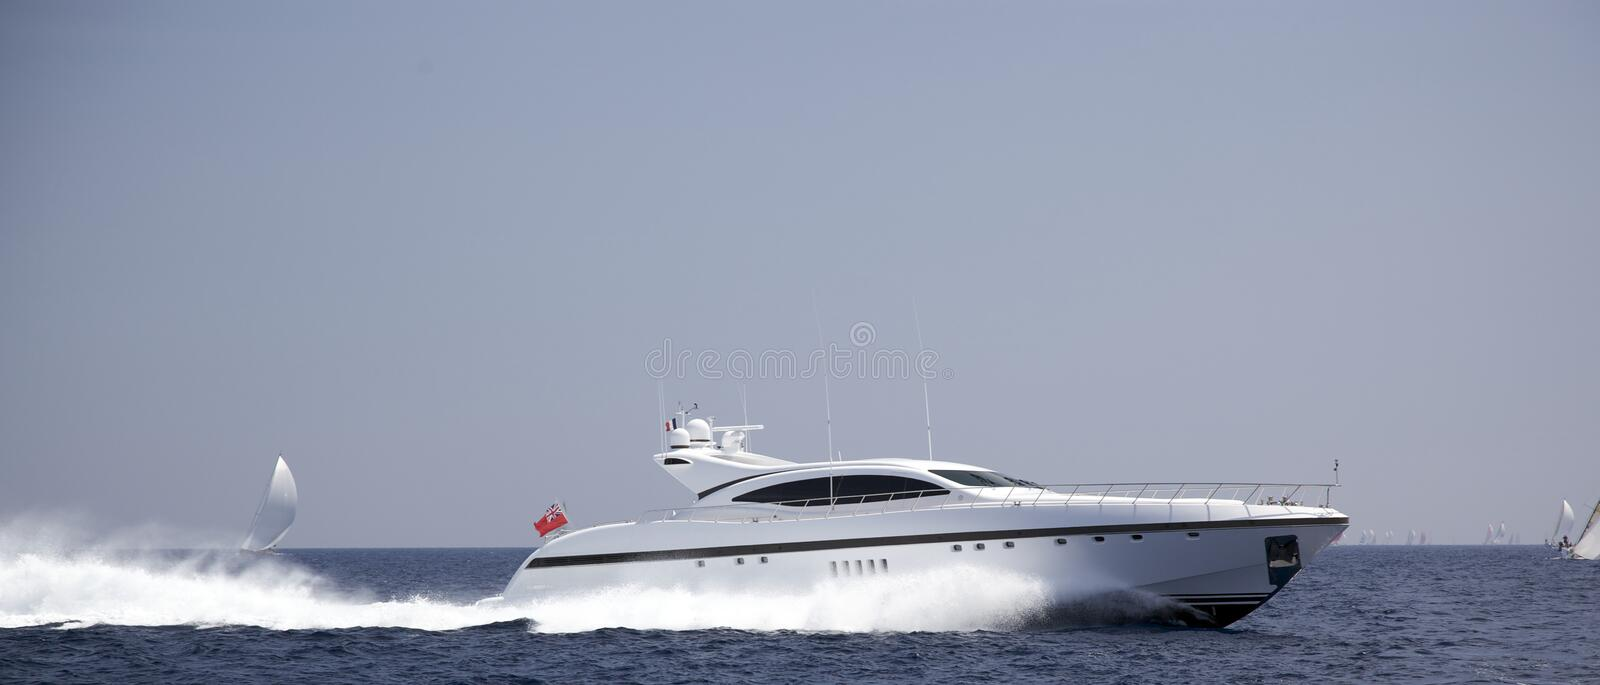 Speedboat in the sea royalty free stock photography